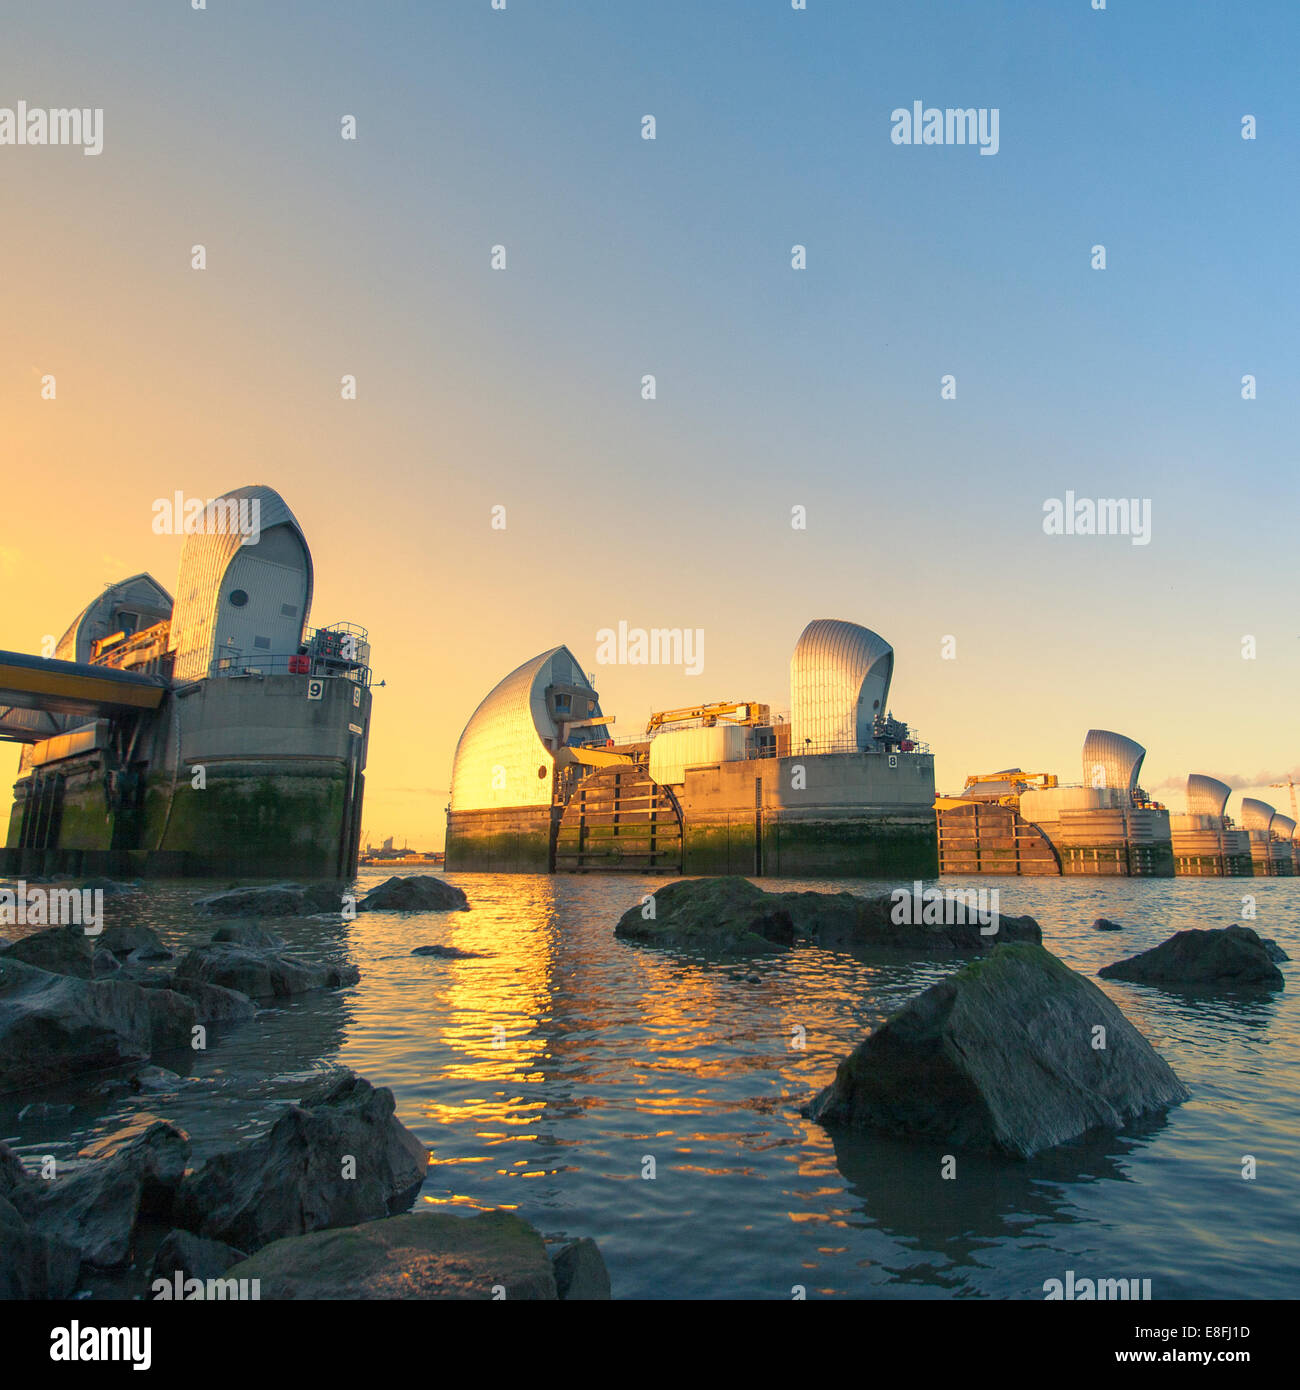 Thames Barrier, London, England, UK Stockbild